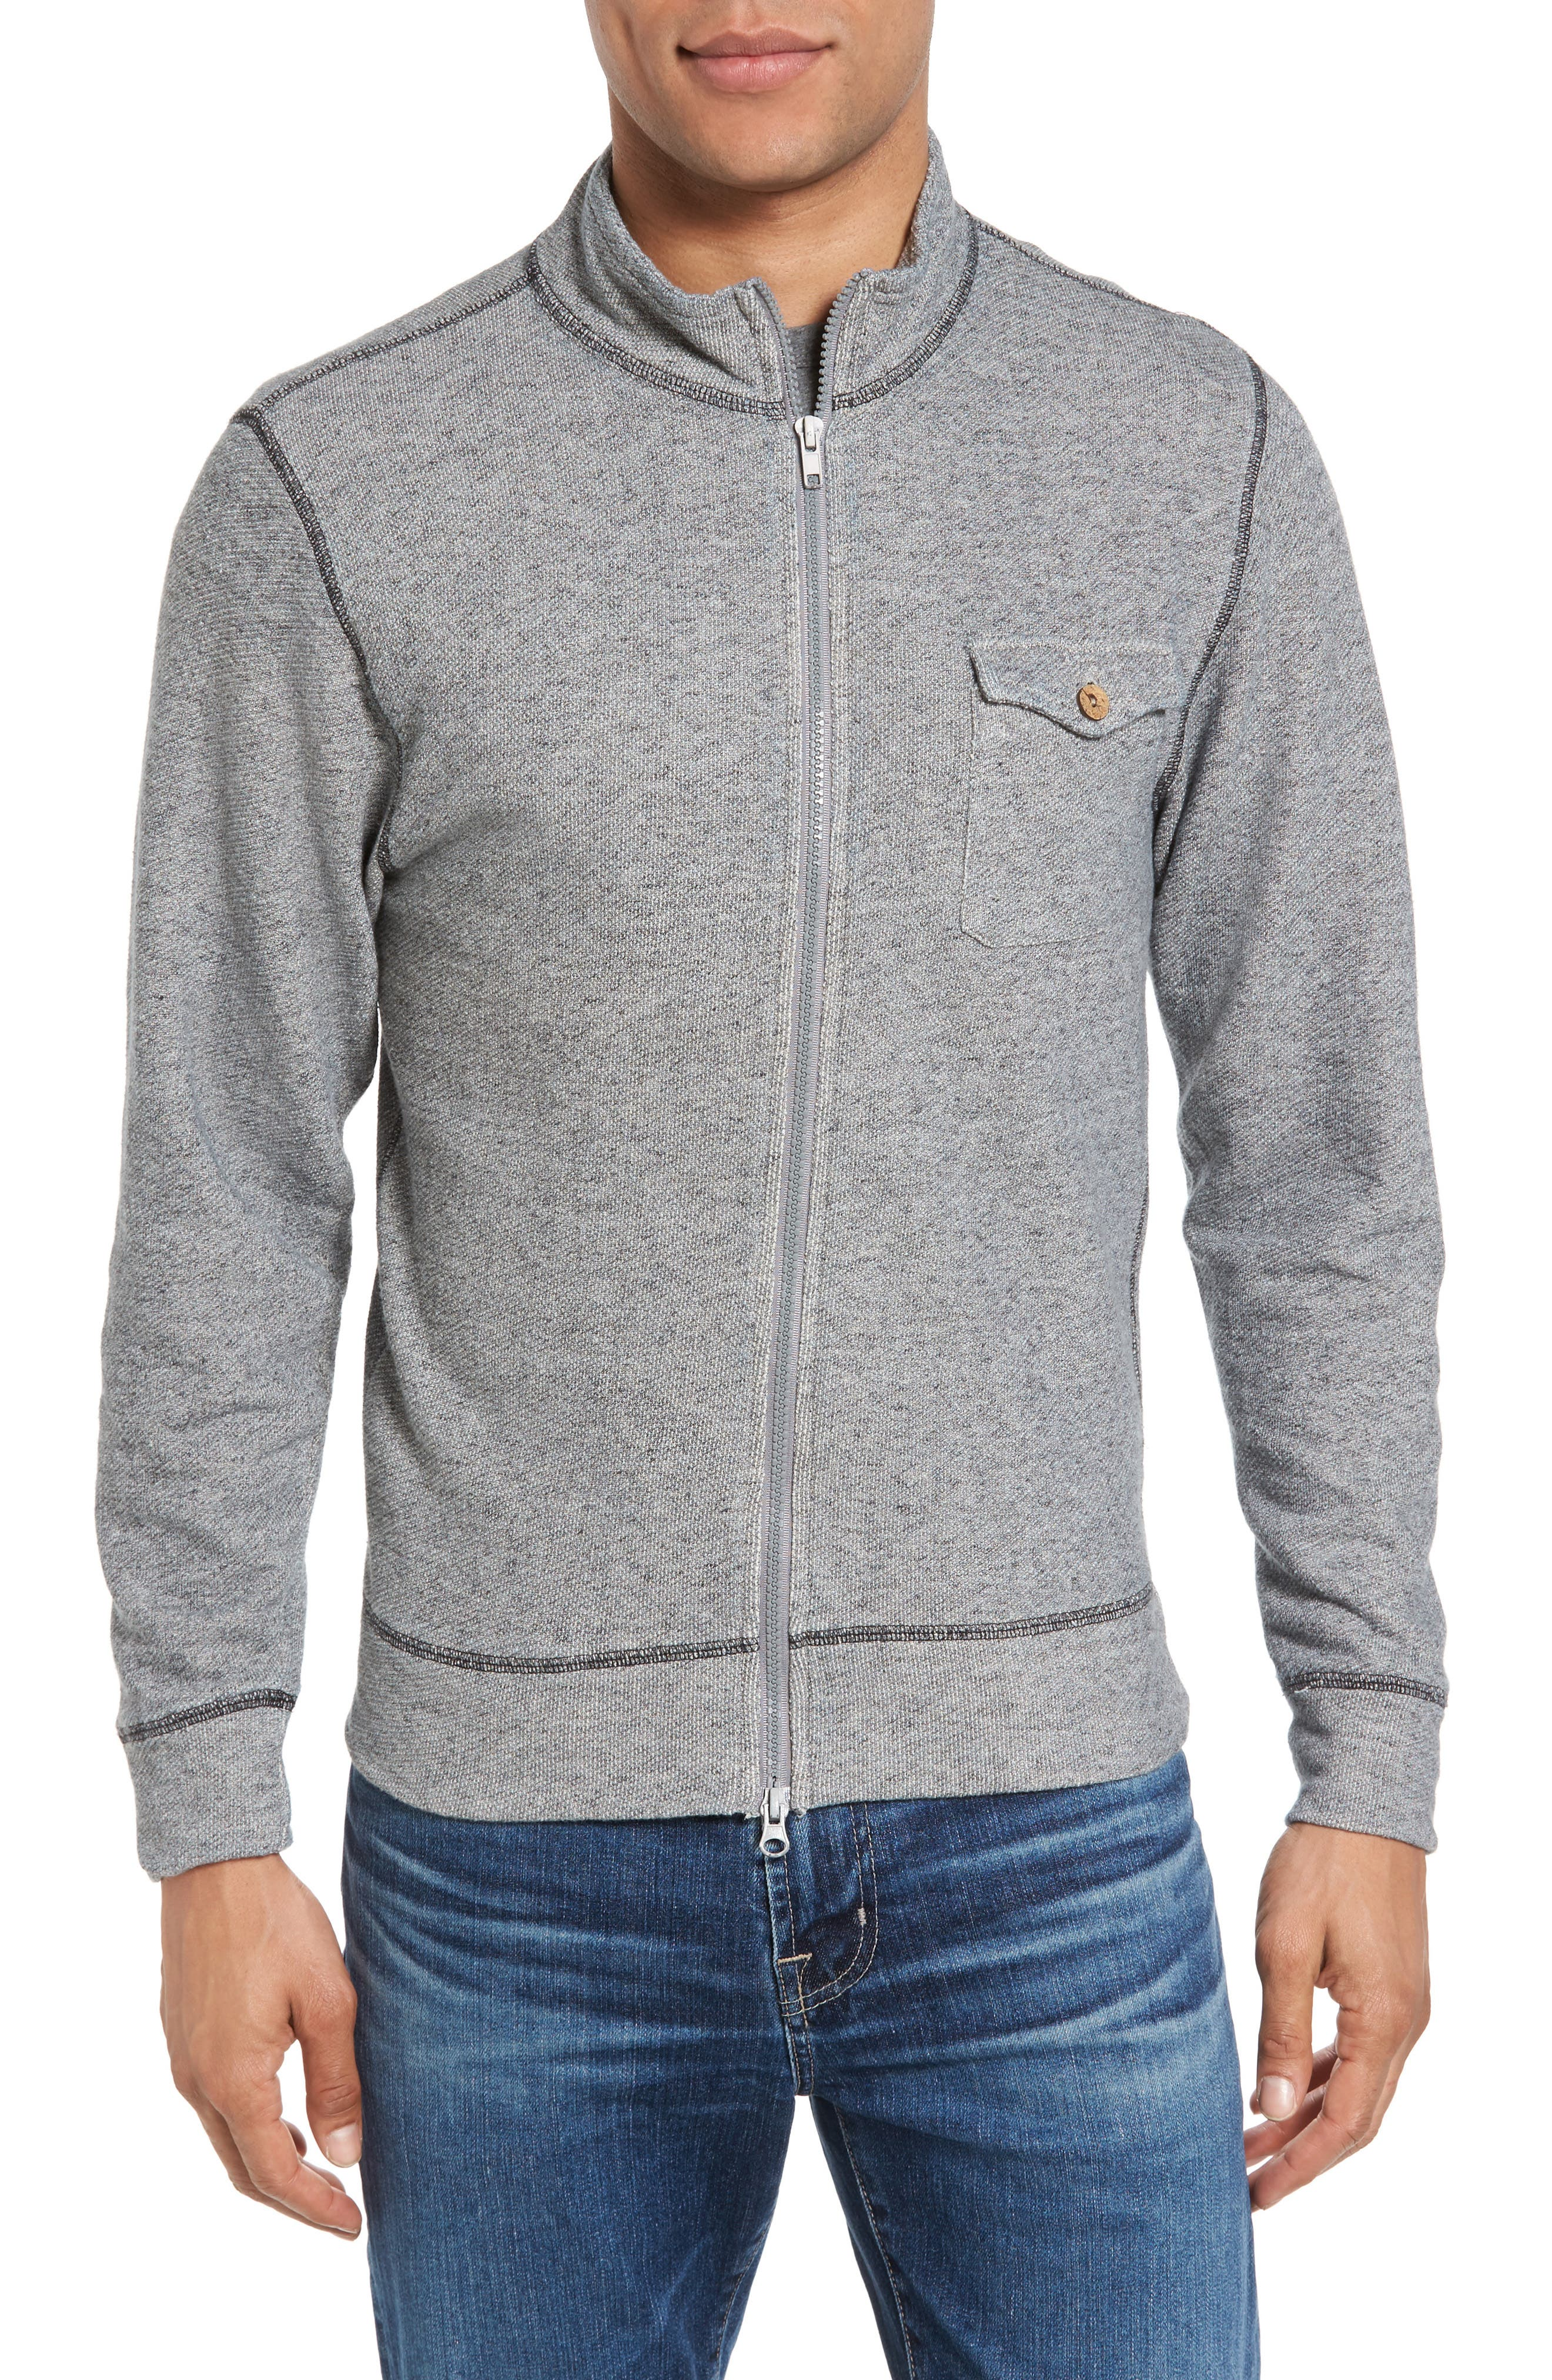 French Terry Zip Cardigan,                         Main,                         color, 020